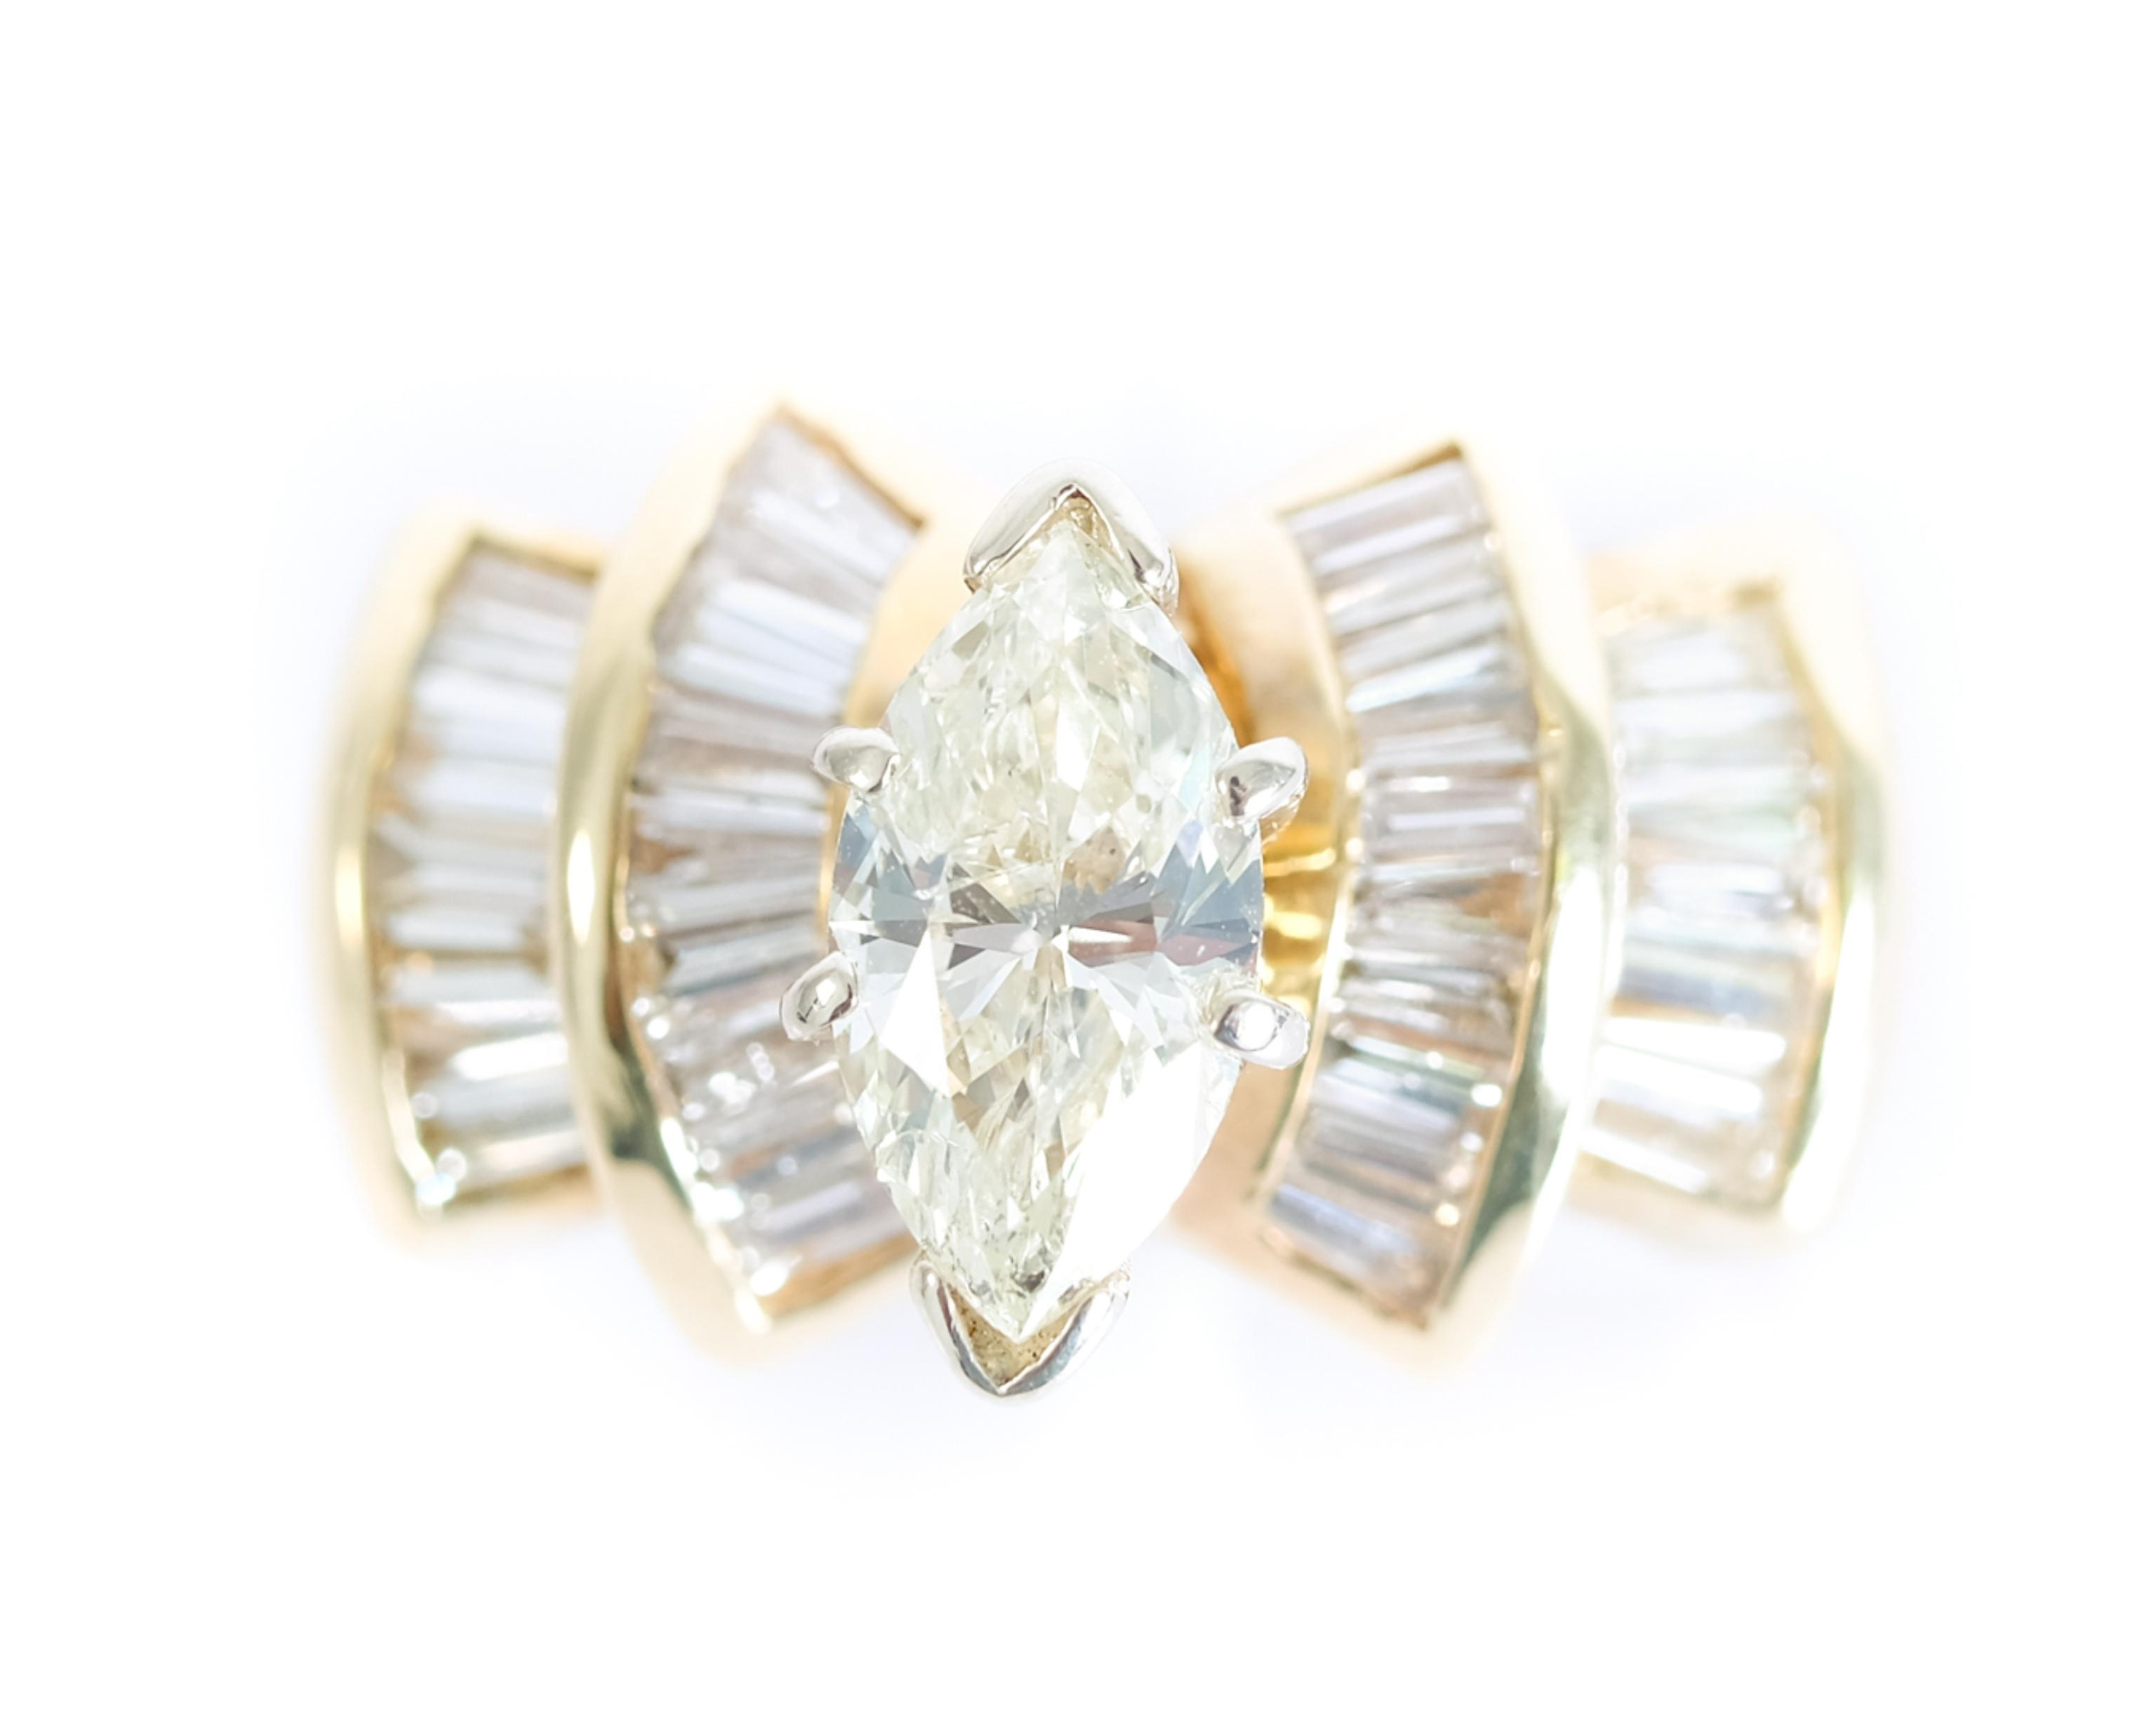 14k Yellow Gold 1CT Marquise Diamond Ring